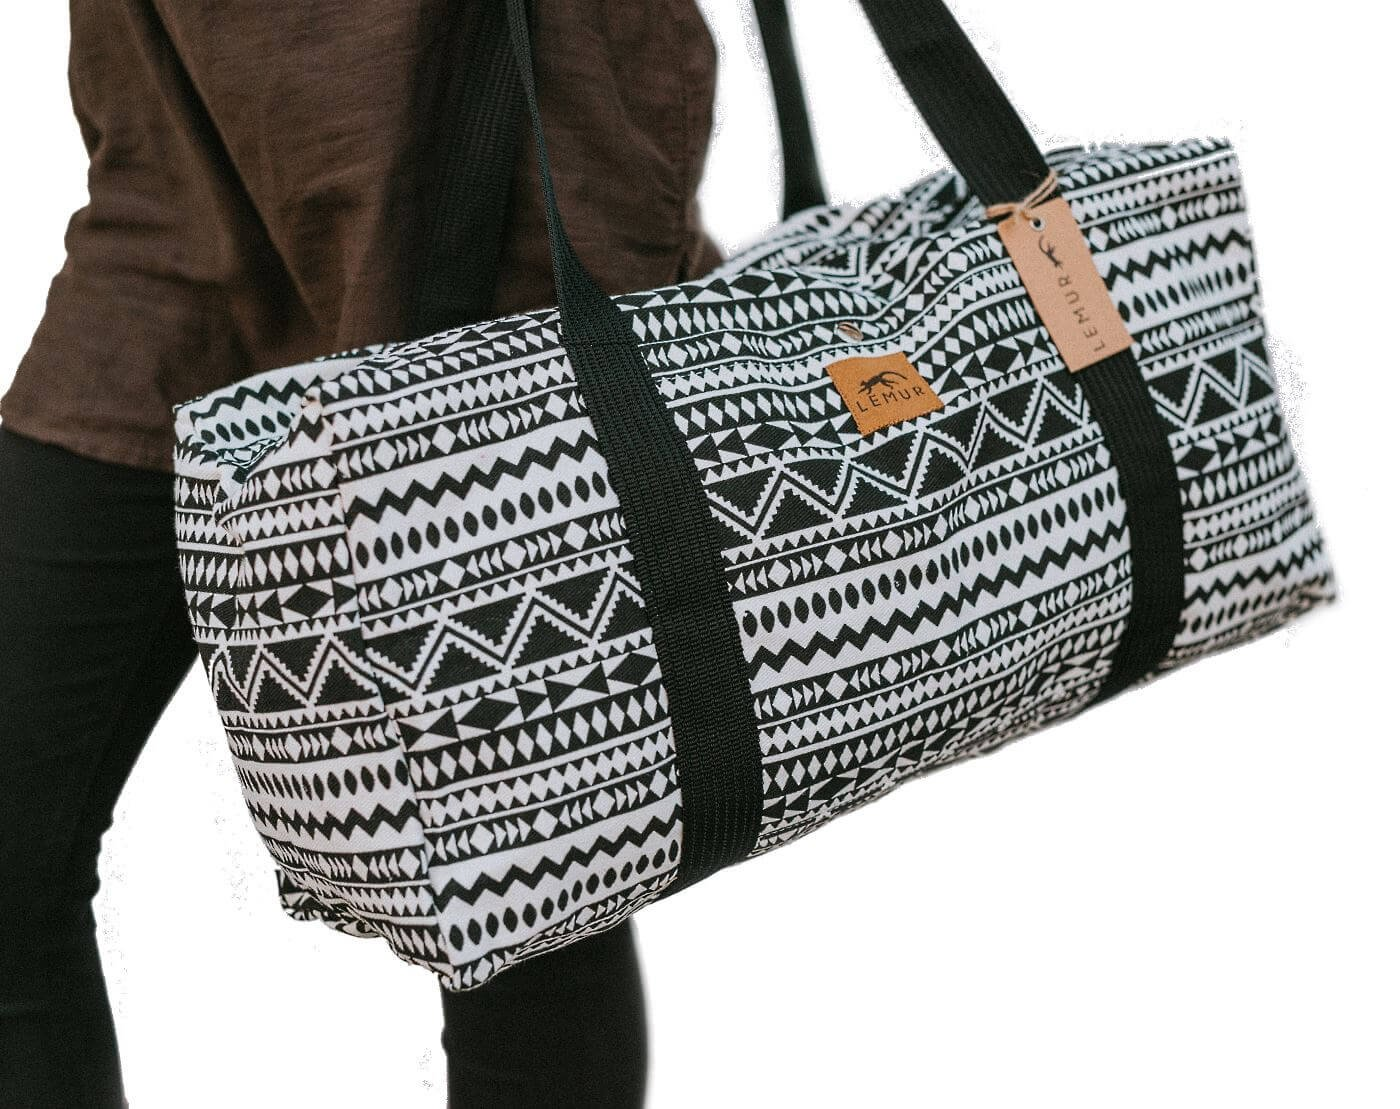 Canvas Duffel Bag - 20 Liter Gym Tote, Foldable Overnight Travel Weekend Luggage by Lemur Bags (Aztec Tribal)